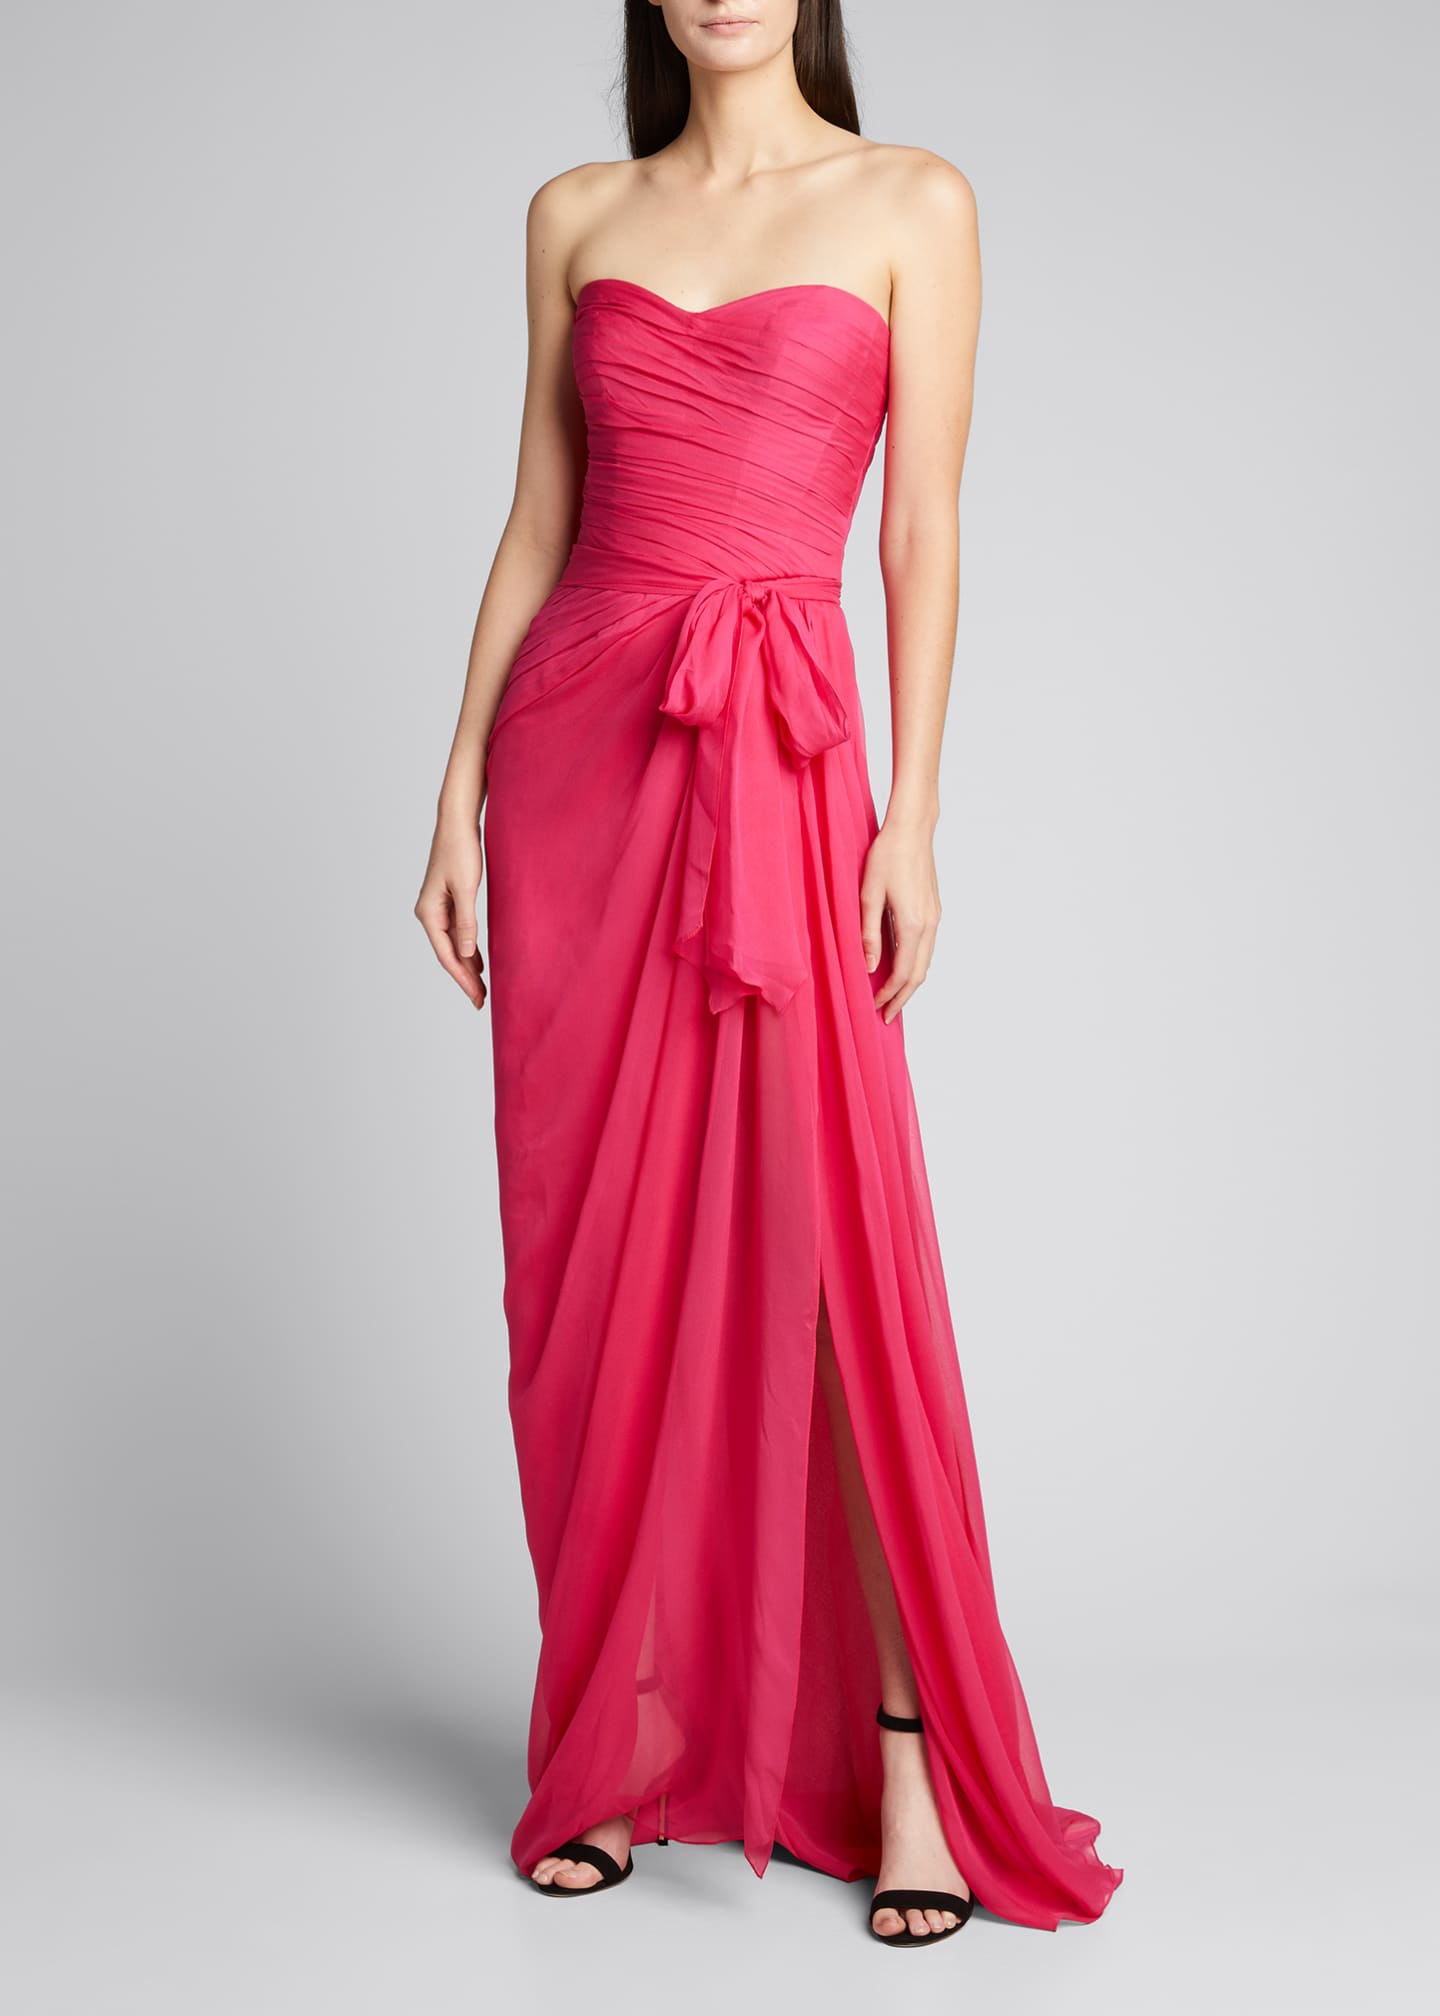 Image 1 of 5: Sweetheart Strapless Chiffon Gown